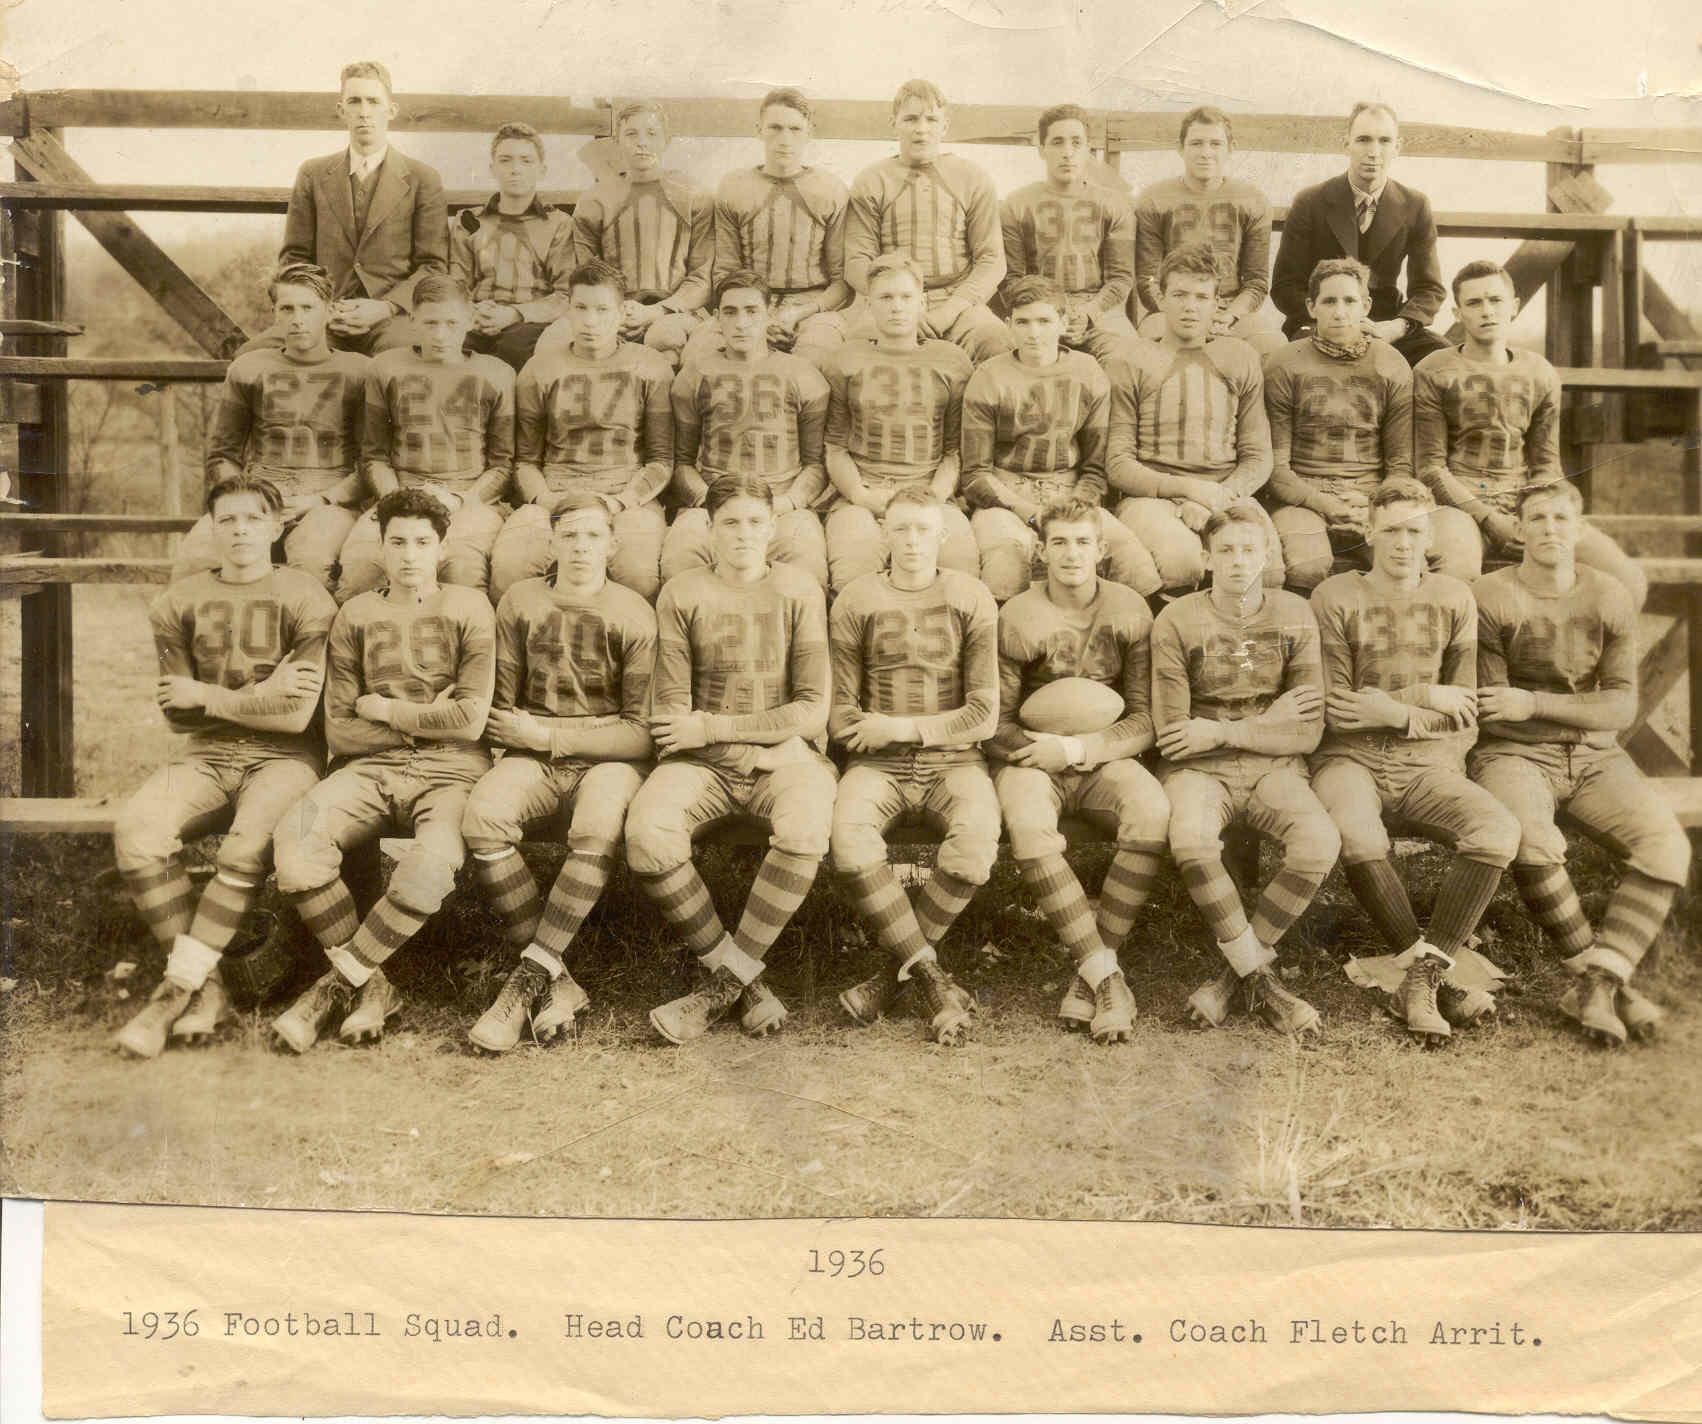 Mount Hope's 1936 Football Team